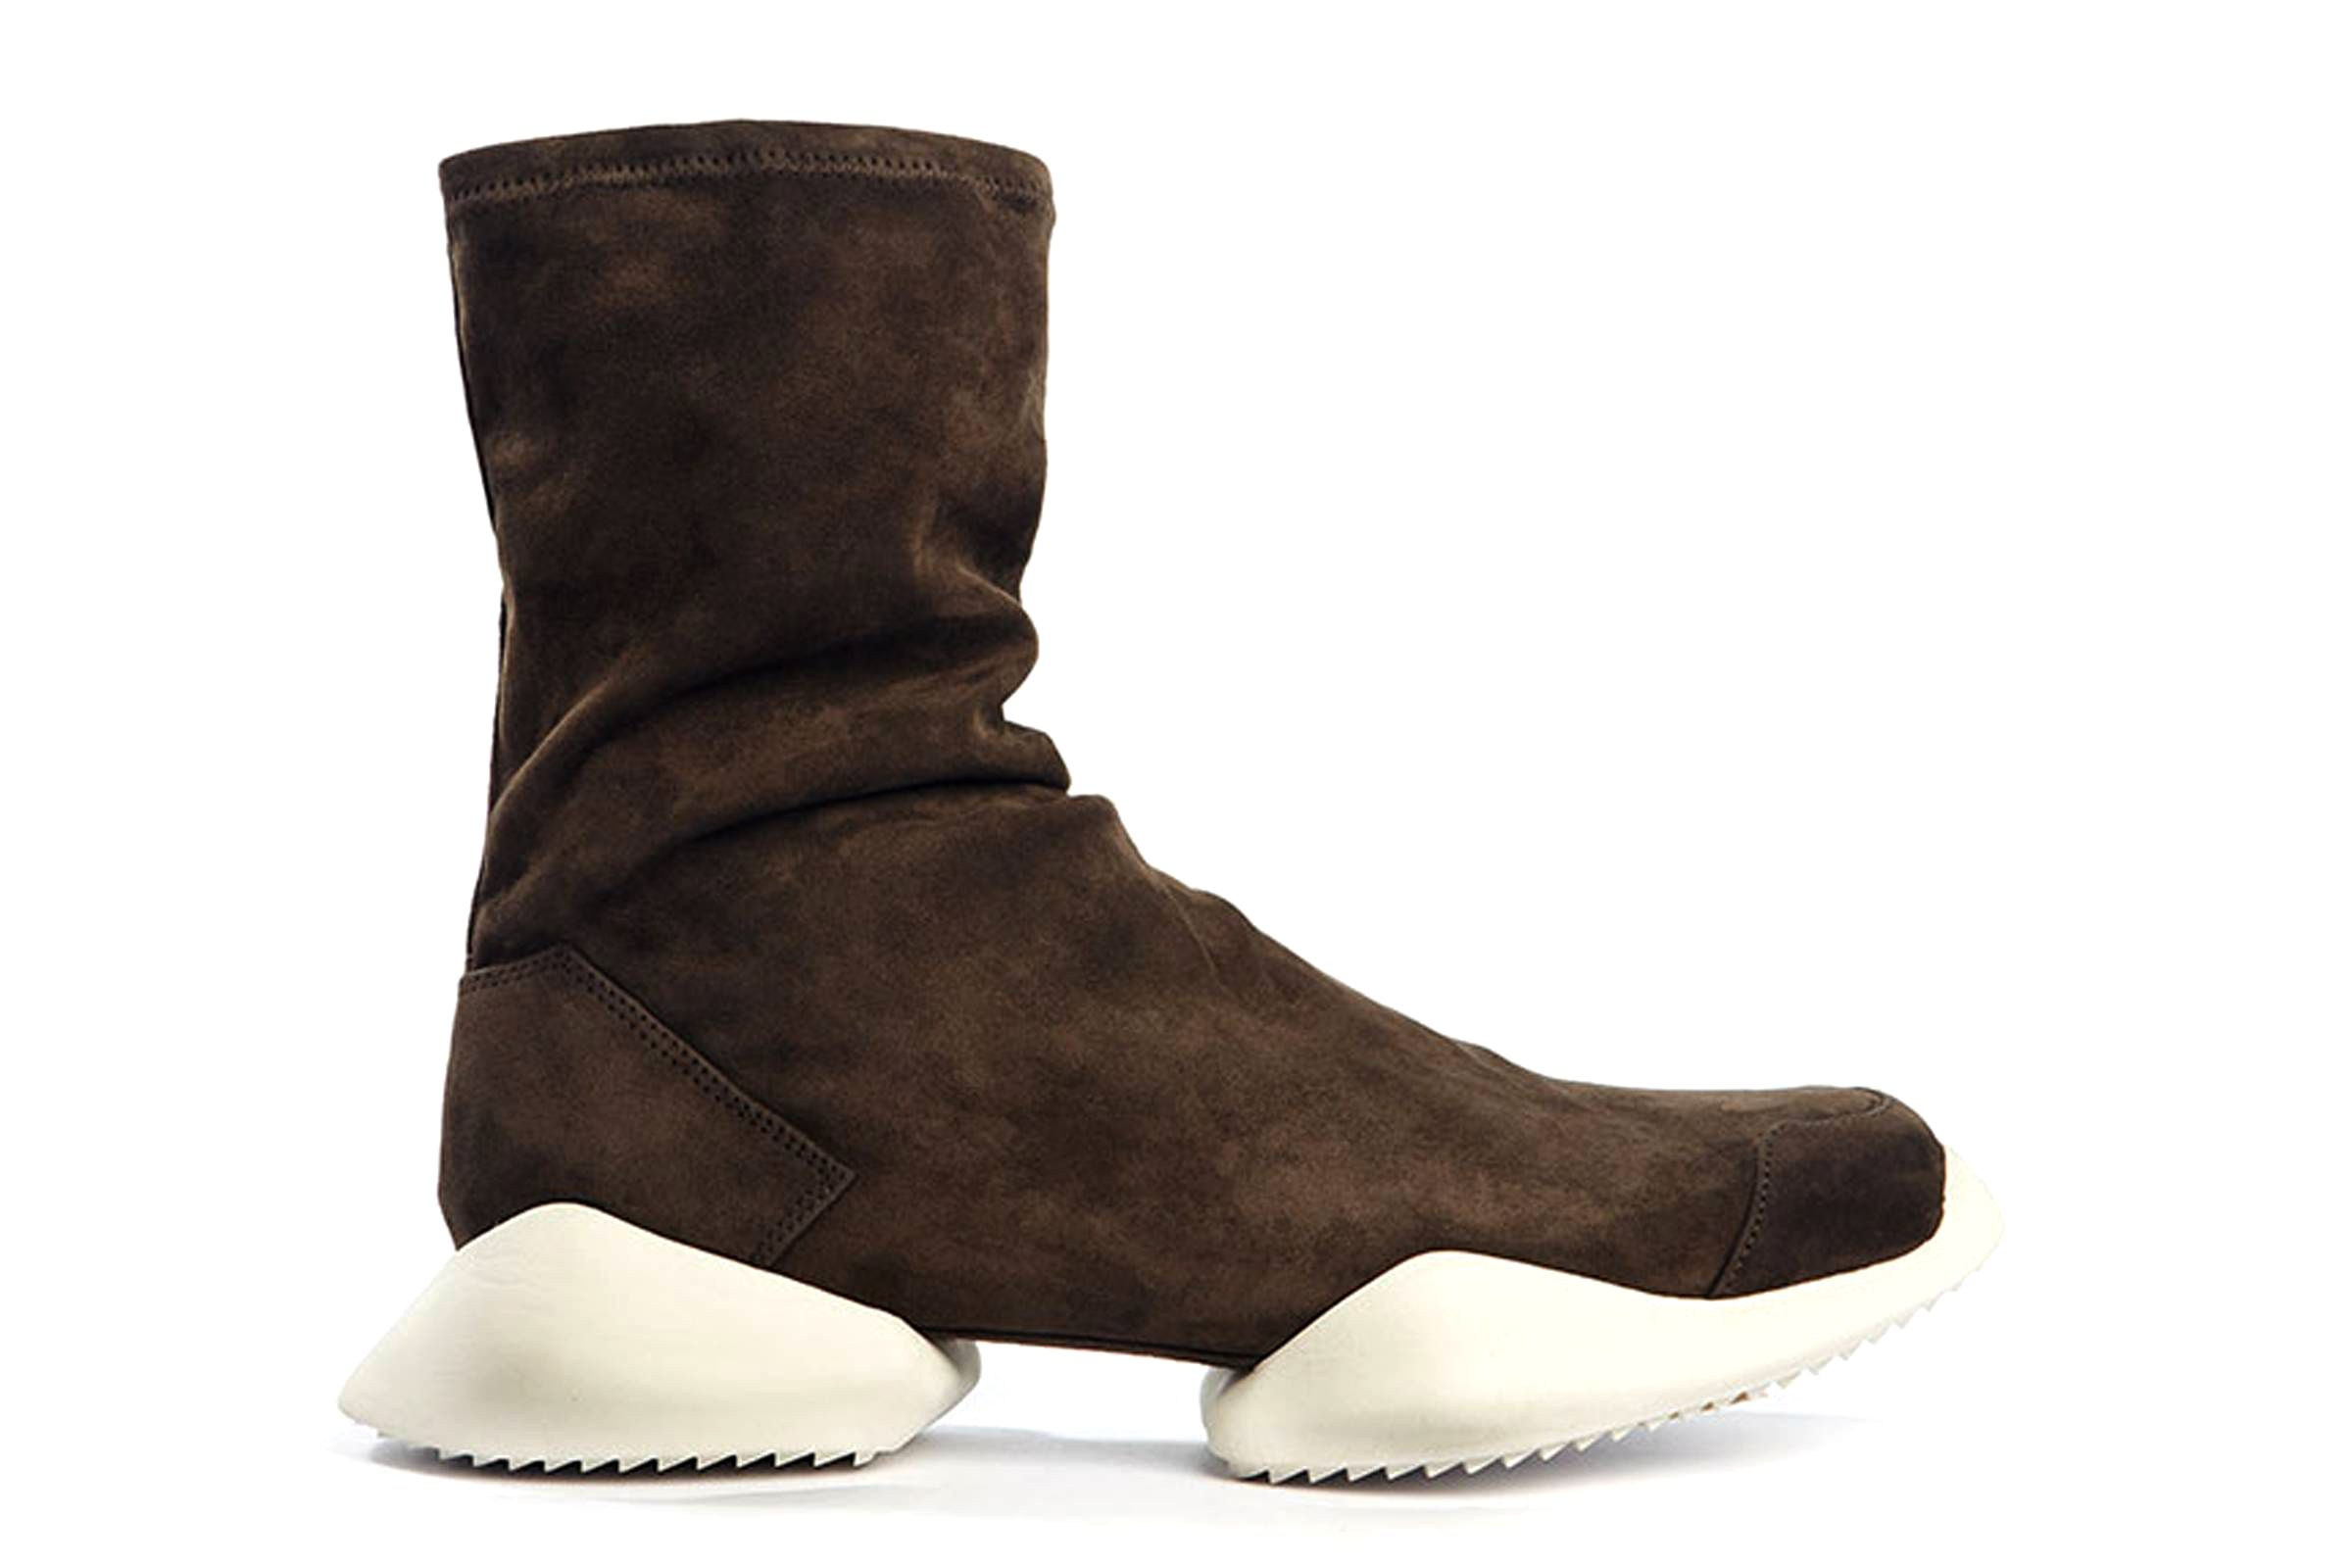 adidas by Rick Owens Runner Ankle Boot Fall/Winter 2015